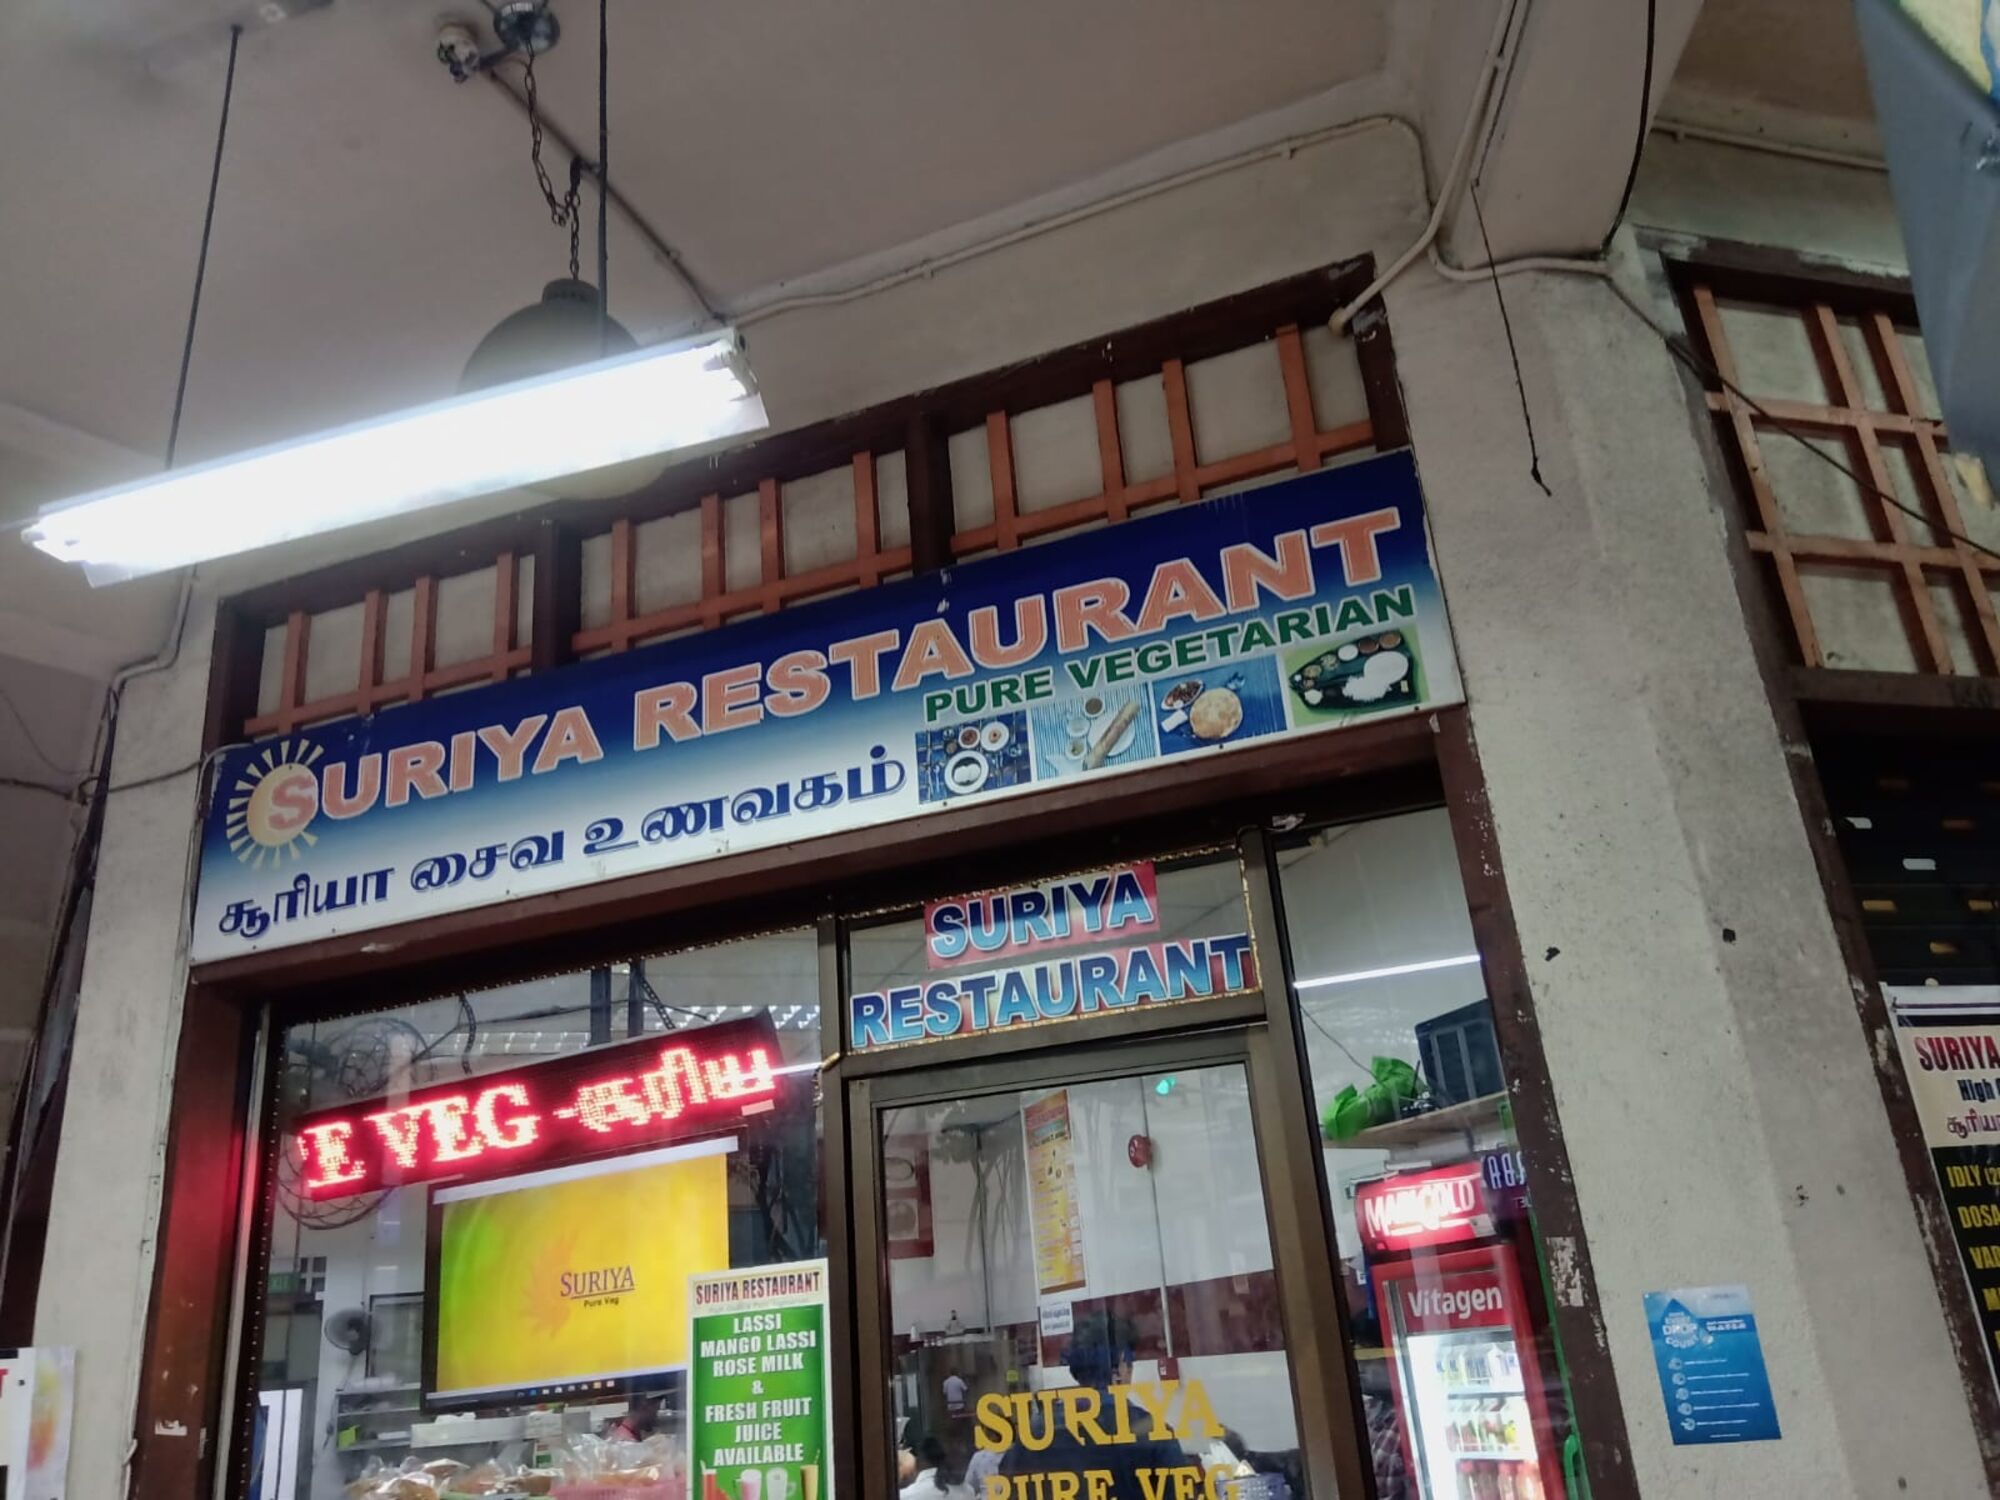 Suriya Restaurant - Ordinary looking, affordable price, but served tastiest food and was our favourite